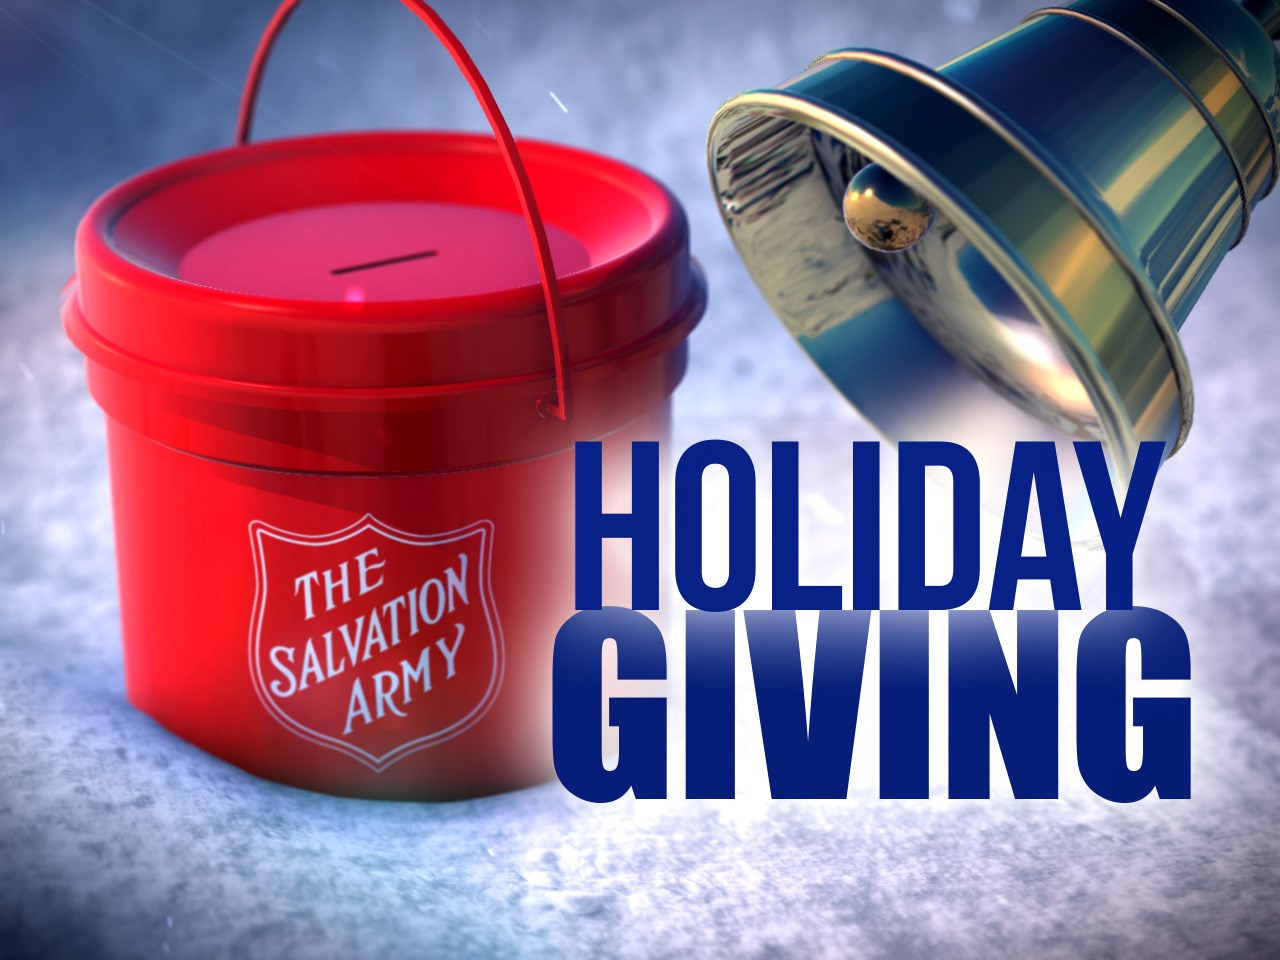 Salvation Army Giving Tuesday